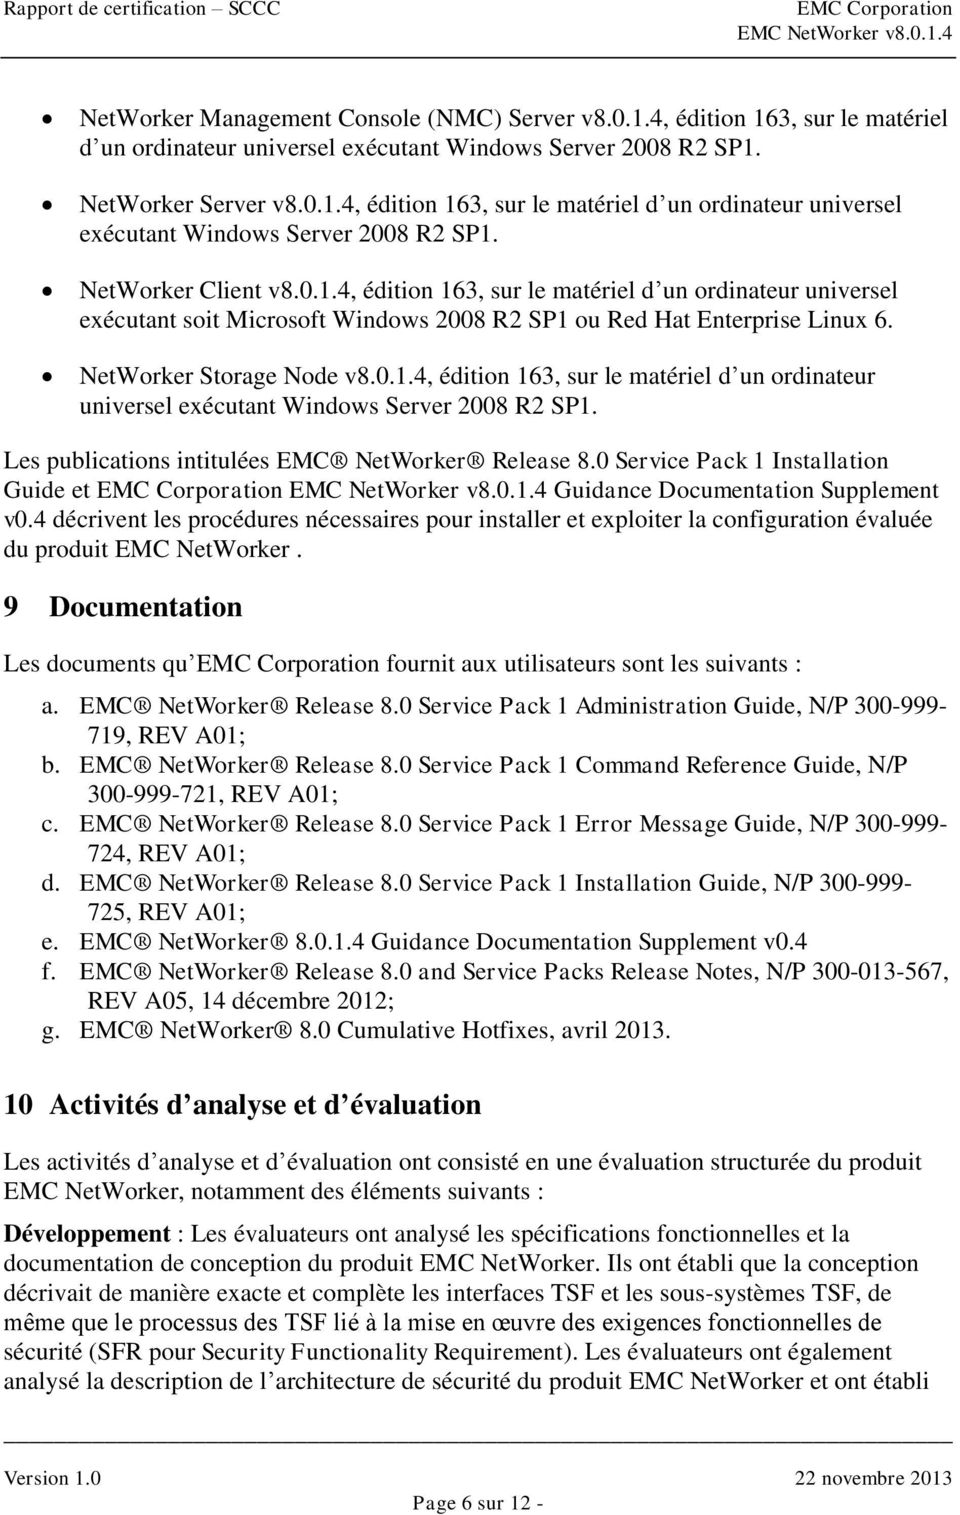 Les publications intitulées EMC NetWorker Release 8.0 Service Pack 1 Installation Guide et Guidance Documentation Supplement v0.